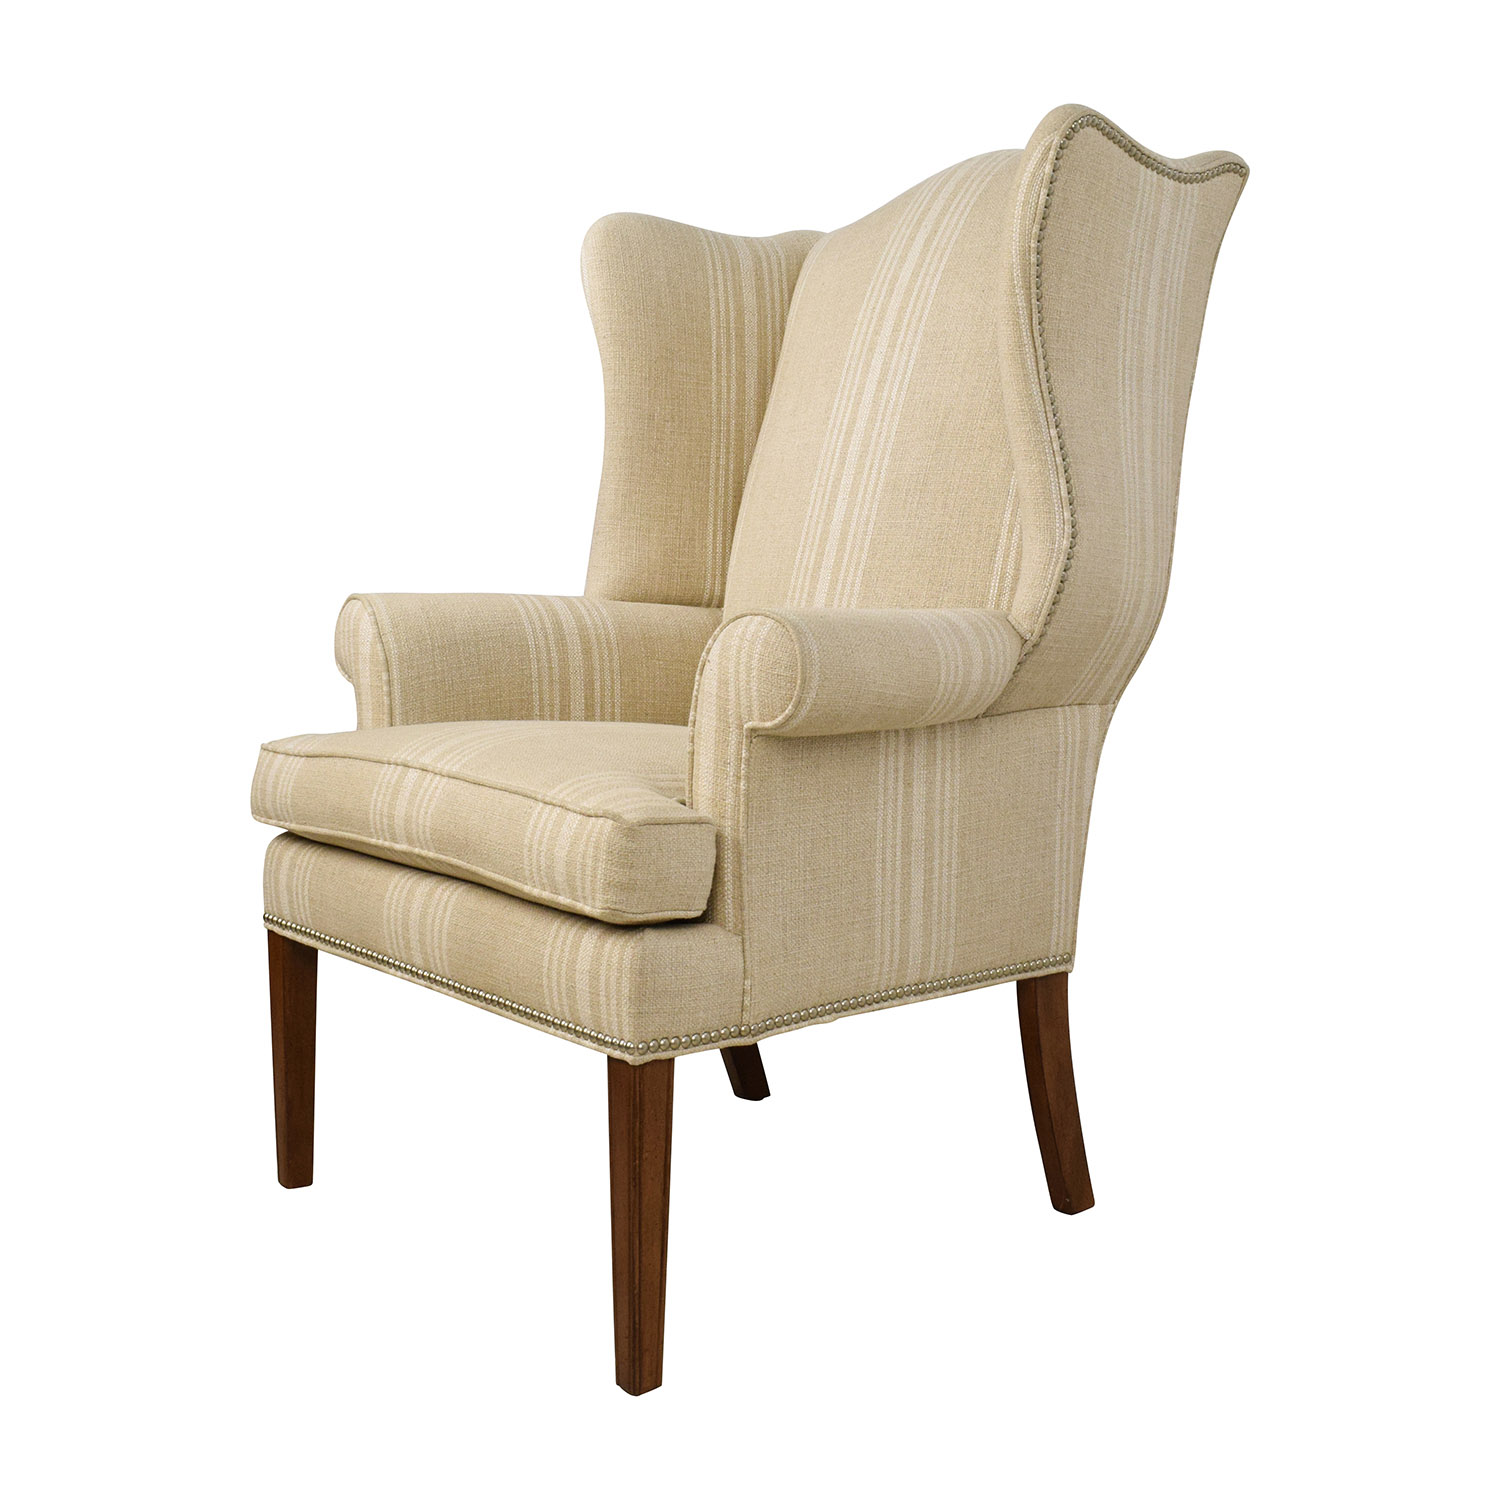 ethan allen wingback chairs discount patio chair cushions 88 off skylar stripped wing